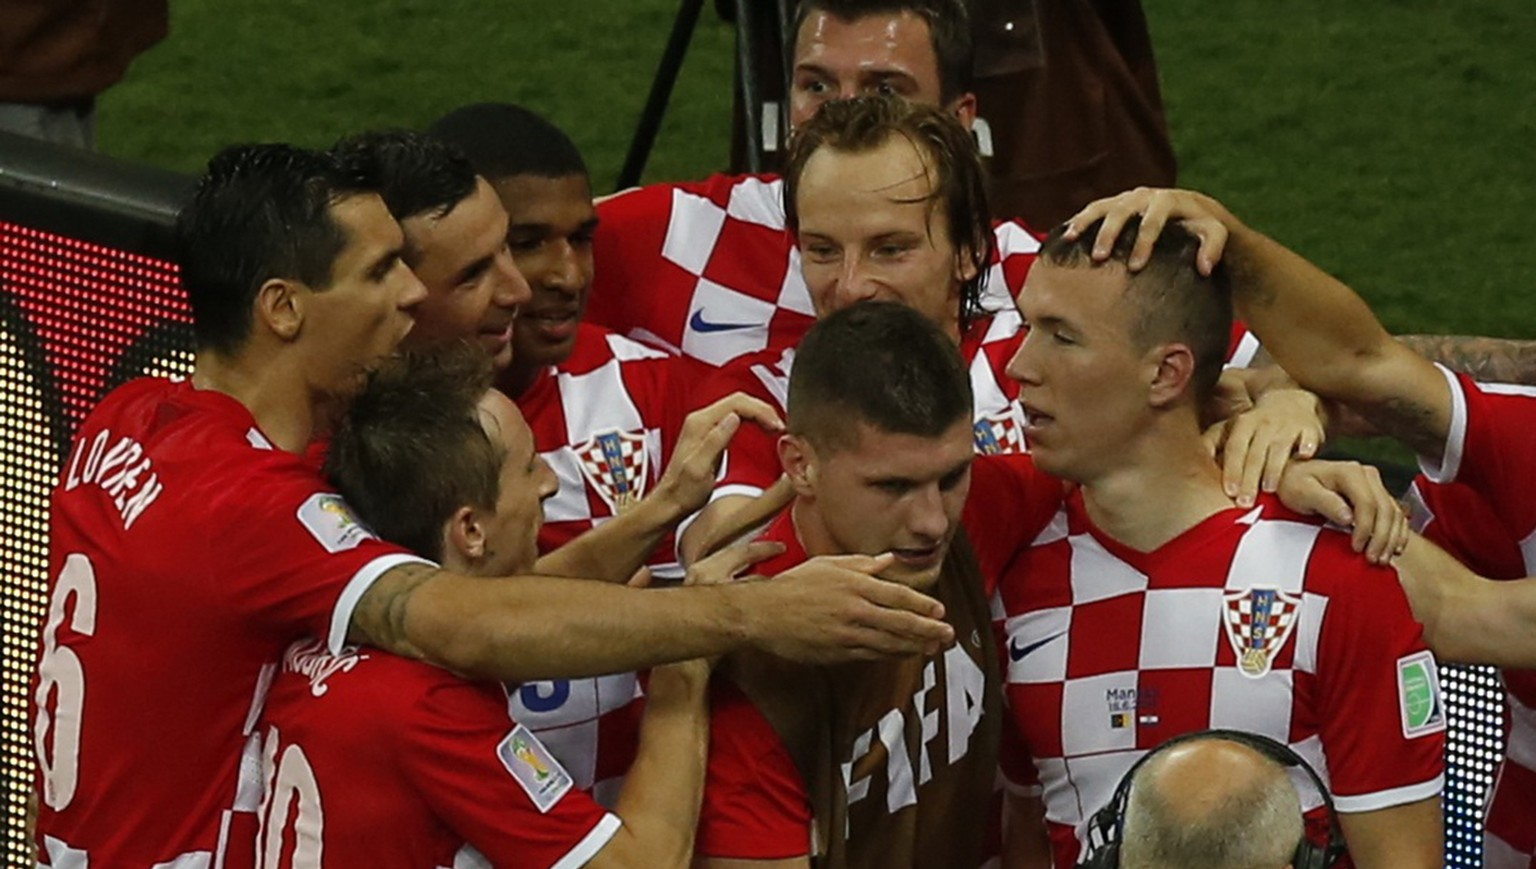 Croatia's Ivan Perisic (R) is hugged by team mates after scoring a goal against Cameroon during their 2014 World Cup Group A soccer match at the Amazonia arena in Manaus June 18, 2014. REUTERS/Andres Stapff (BRAZIL  - Tags: SOCCER SPORT WORLD CUP)